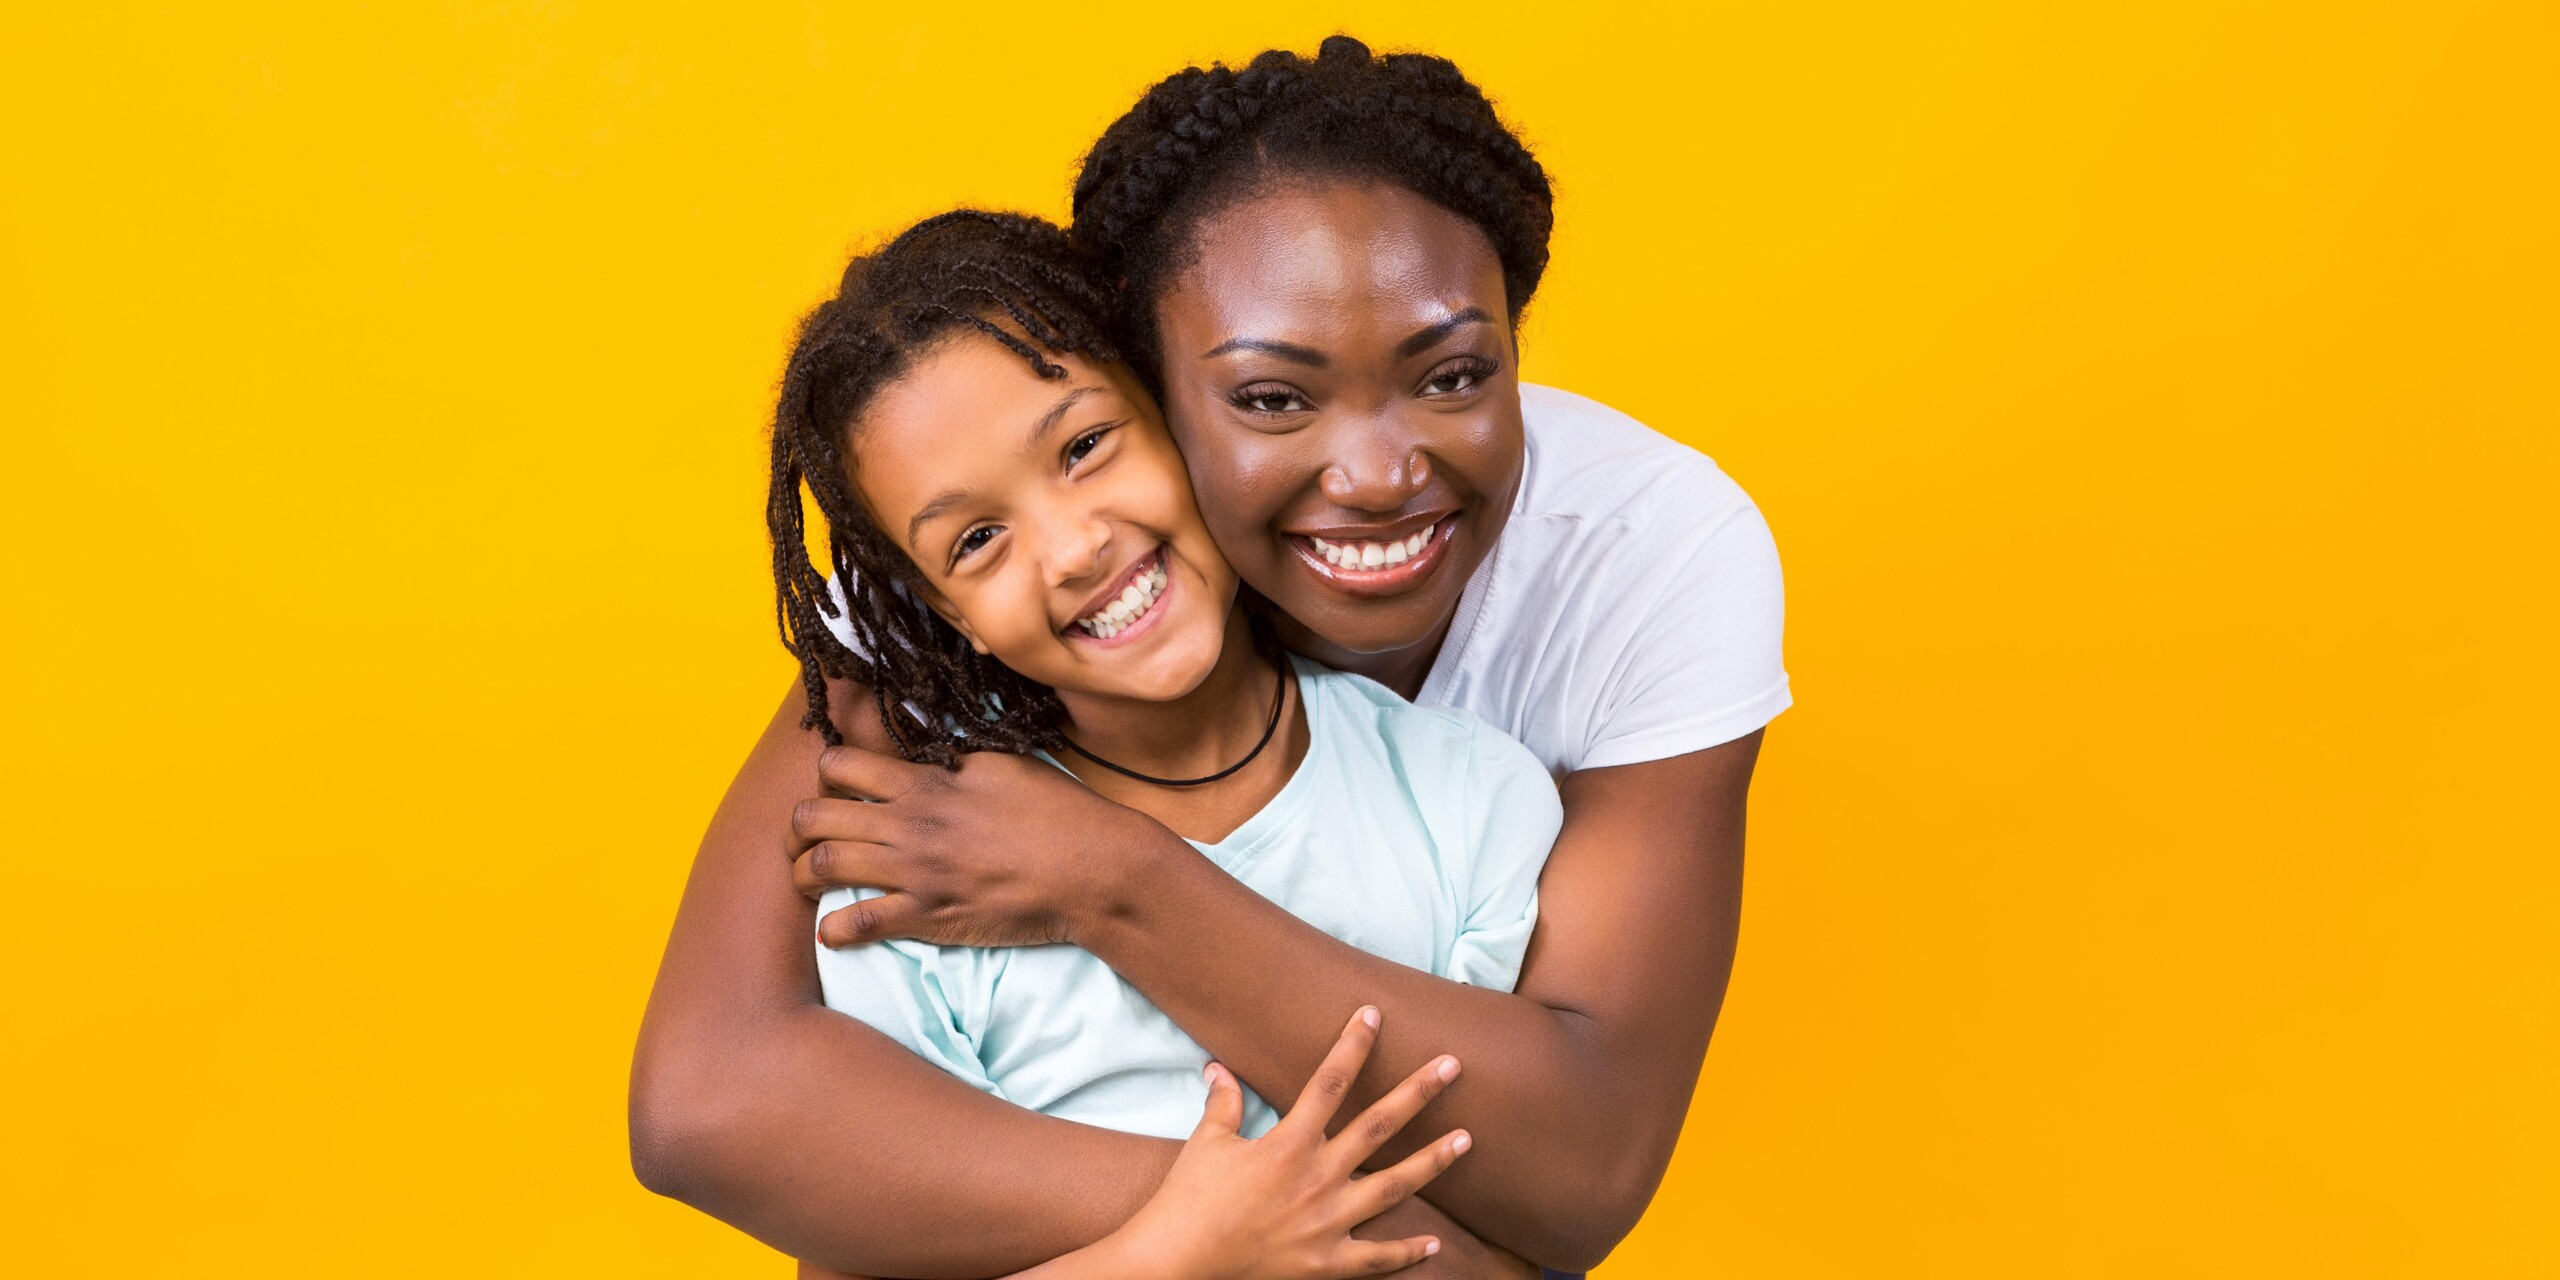 Parenting with Strengths